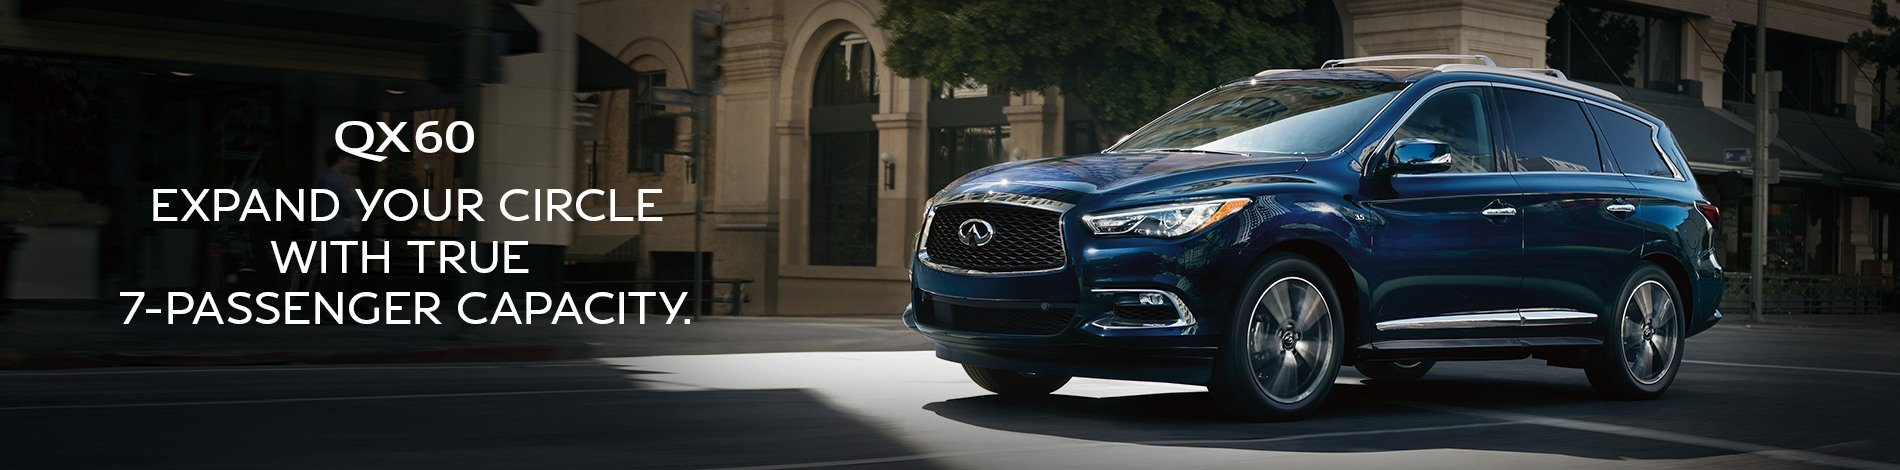 QX60 Expand Your Circle